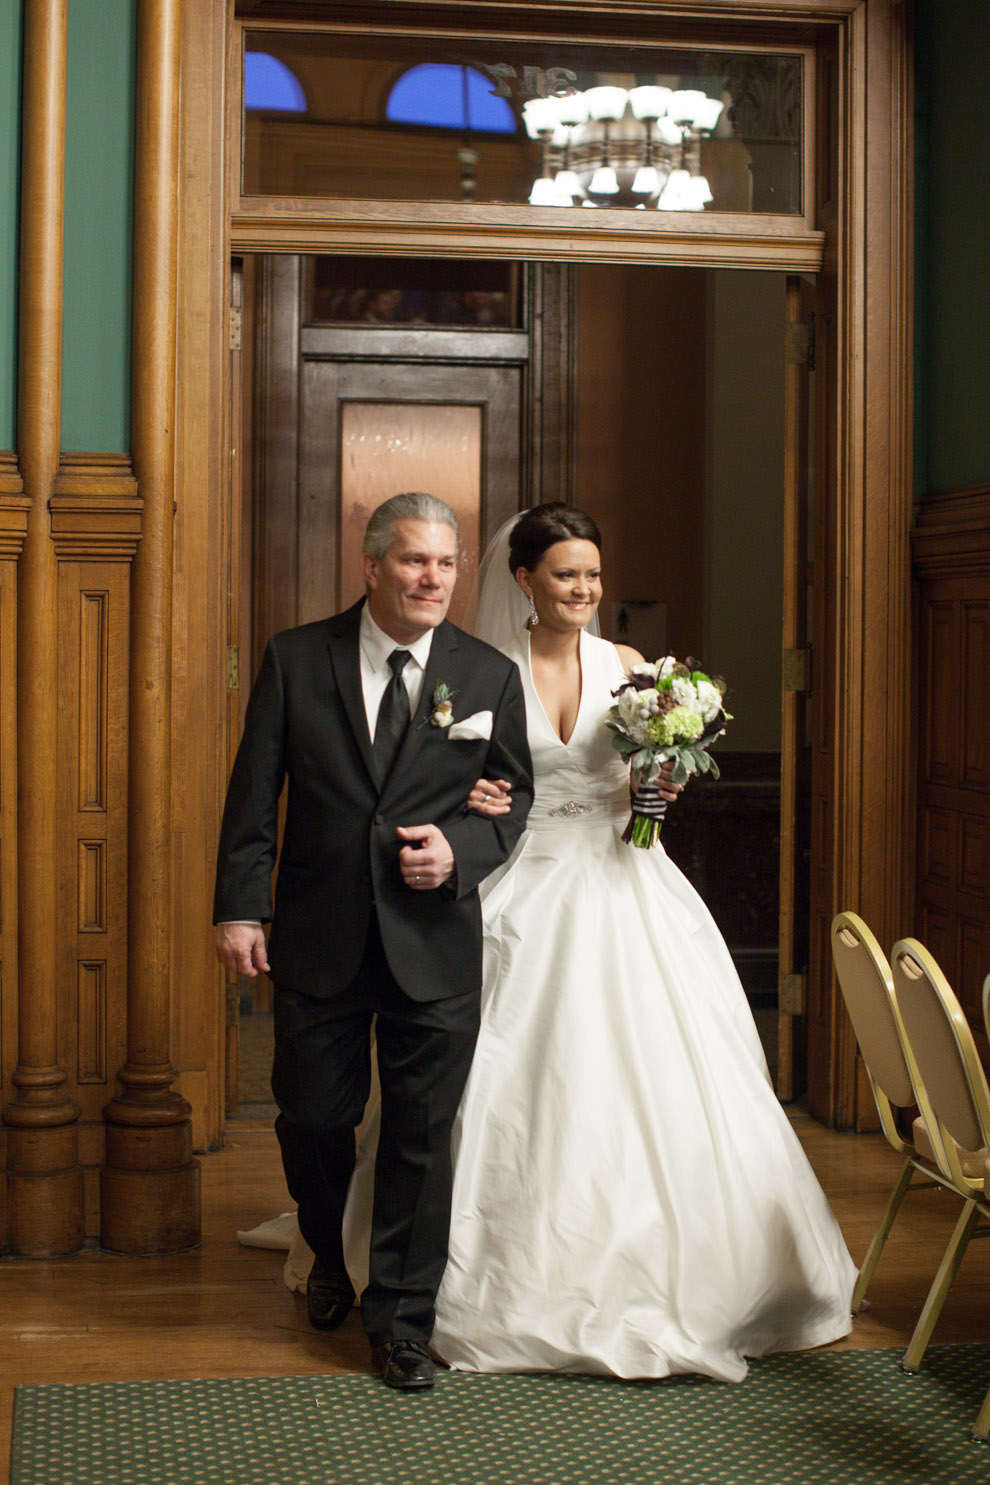 011114_Olmscheid_Wedding_2026